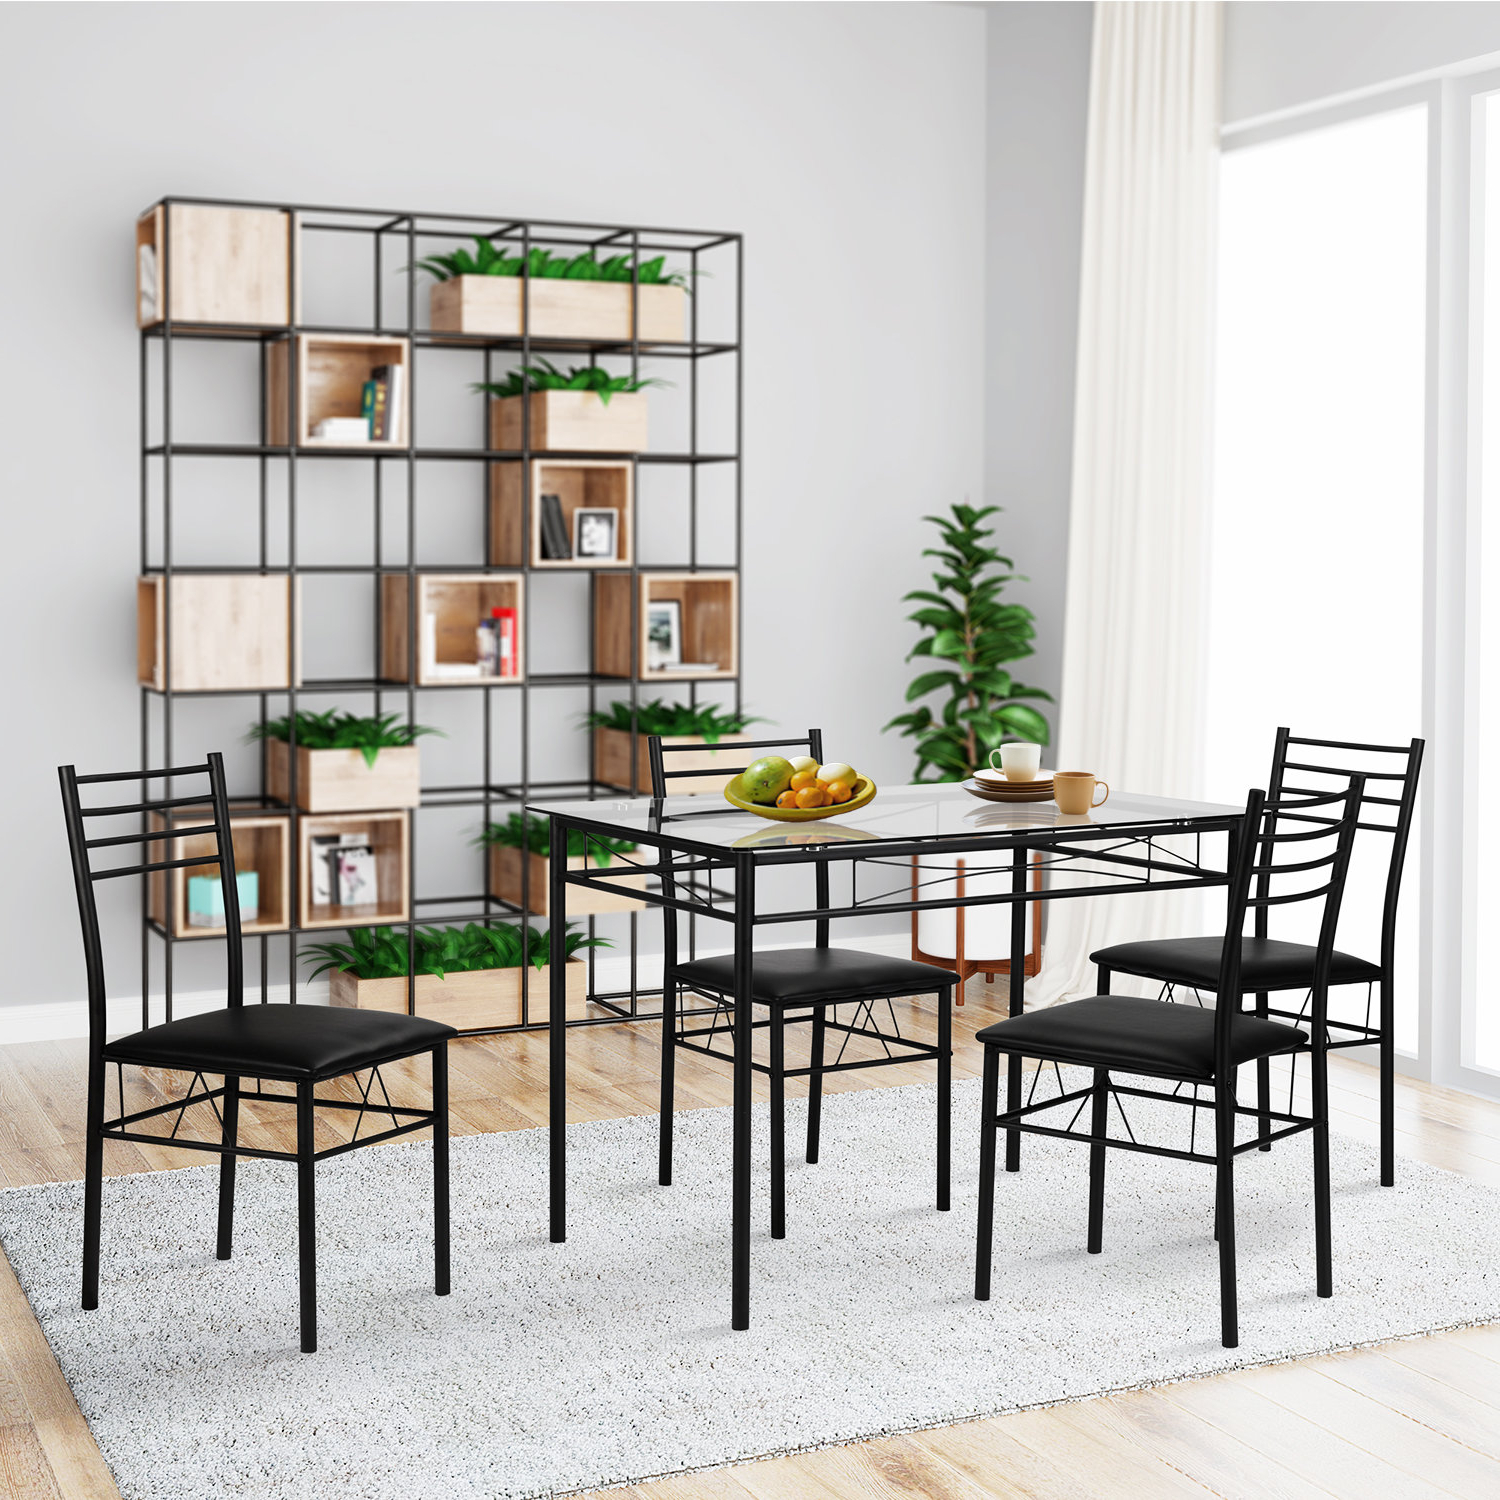 Most Recently Released Lightle 5 Piece Breakfast Nook Dining Sets Intended For Ebern Designs Lightle 5 Piece Breakfast Nook Dining Set (View 16 of 25)